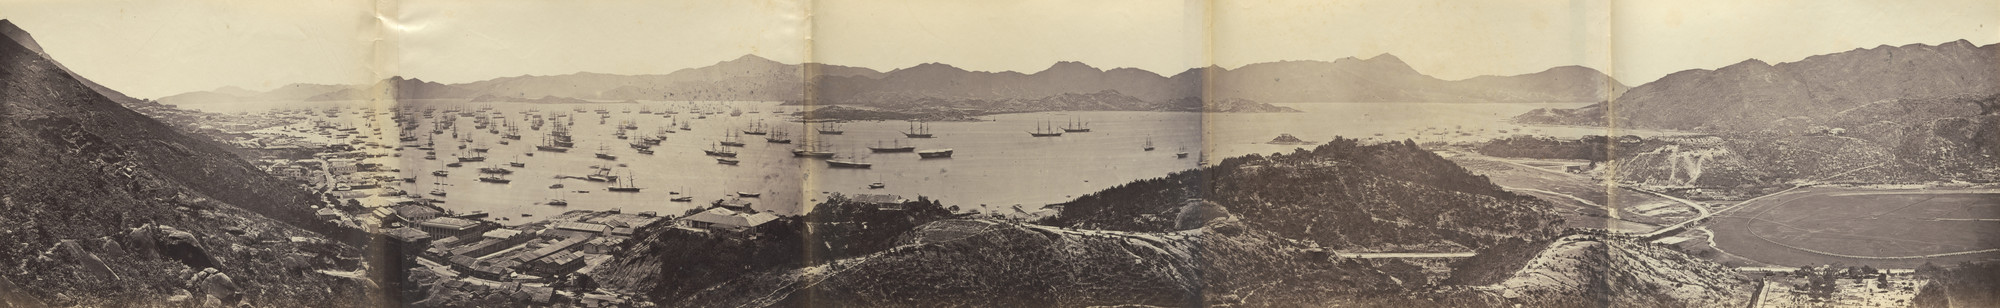 Felice Beato. Panorama of Hong Kong taken from Happy Valley. 1860